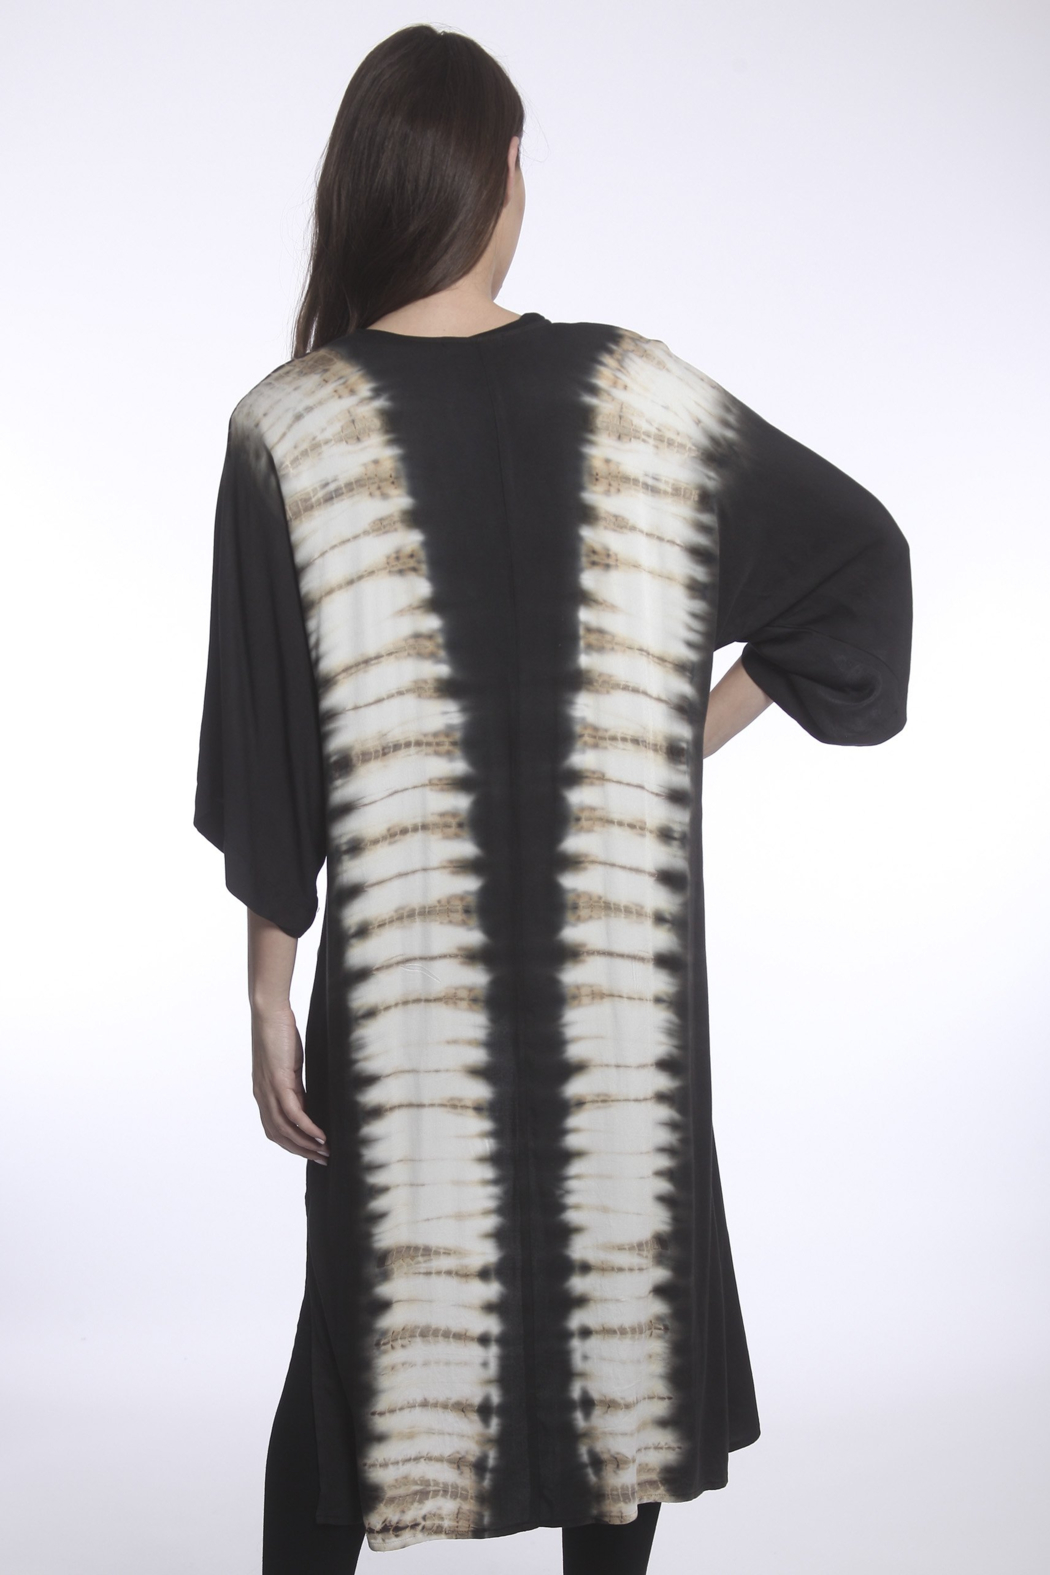 RIVER AND SKY Sayulita Tie Dye Panel Duster - Back Cropped Image